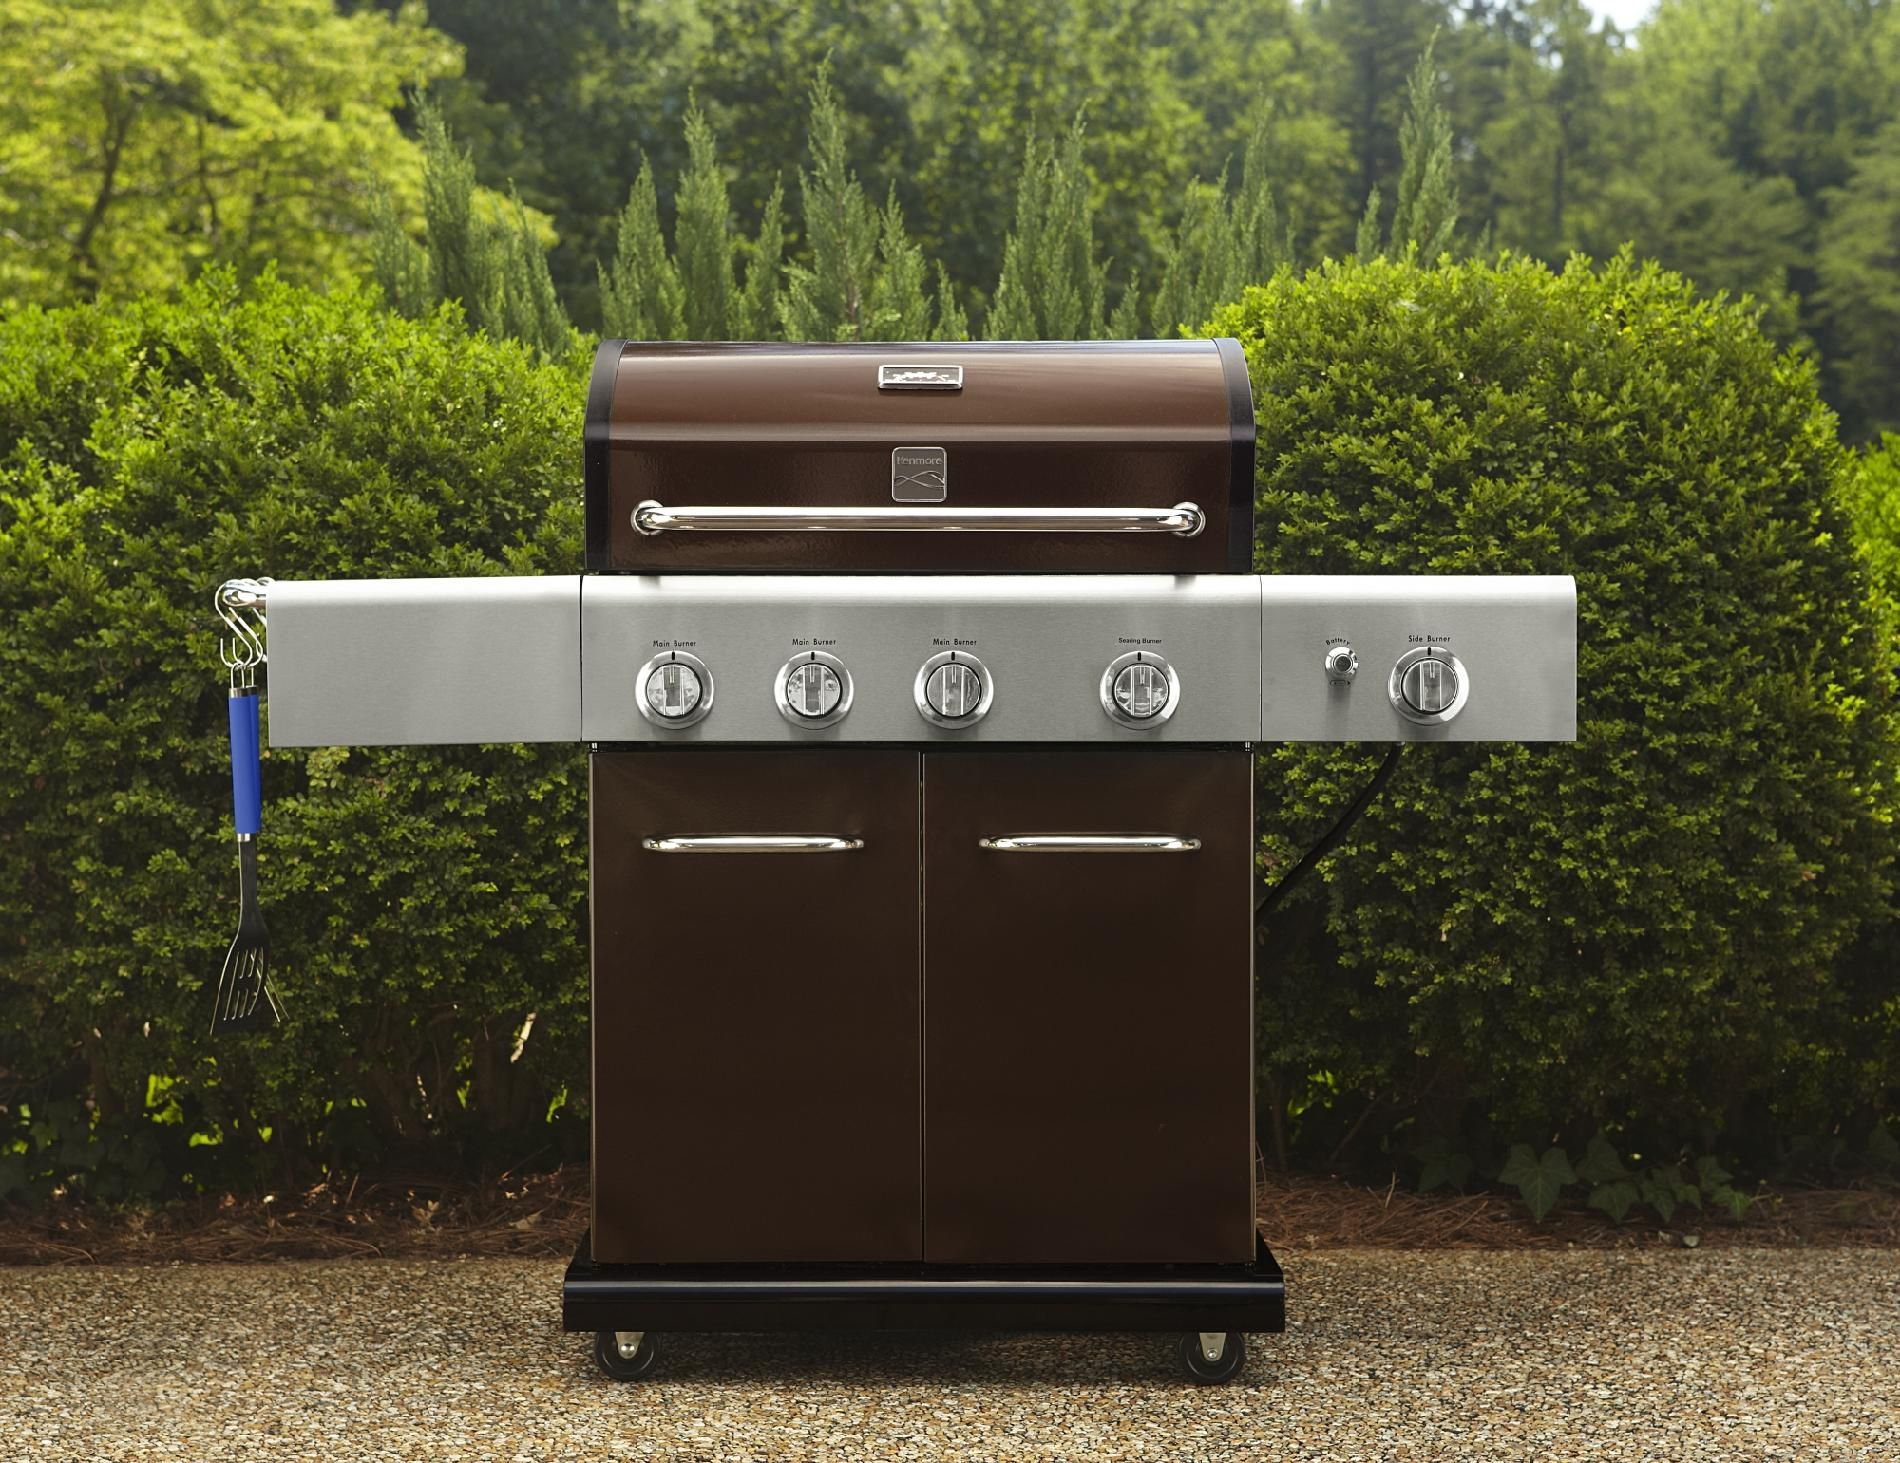 4-Burner-LP-Mocha-Gas-Grill-w-Searing-Burner-Side-Burner